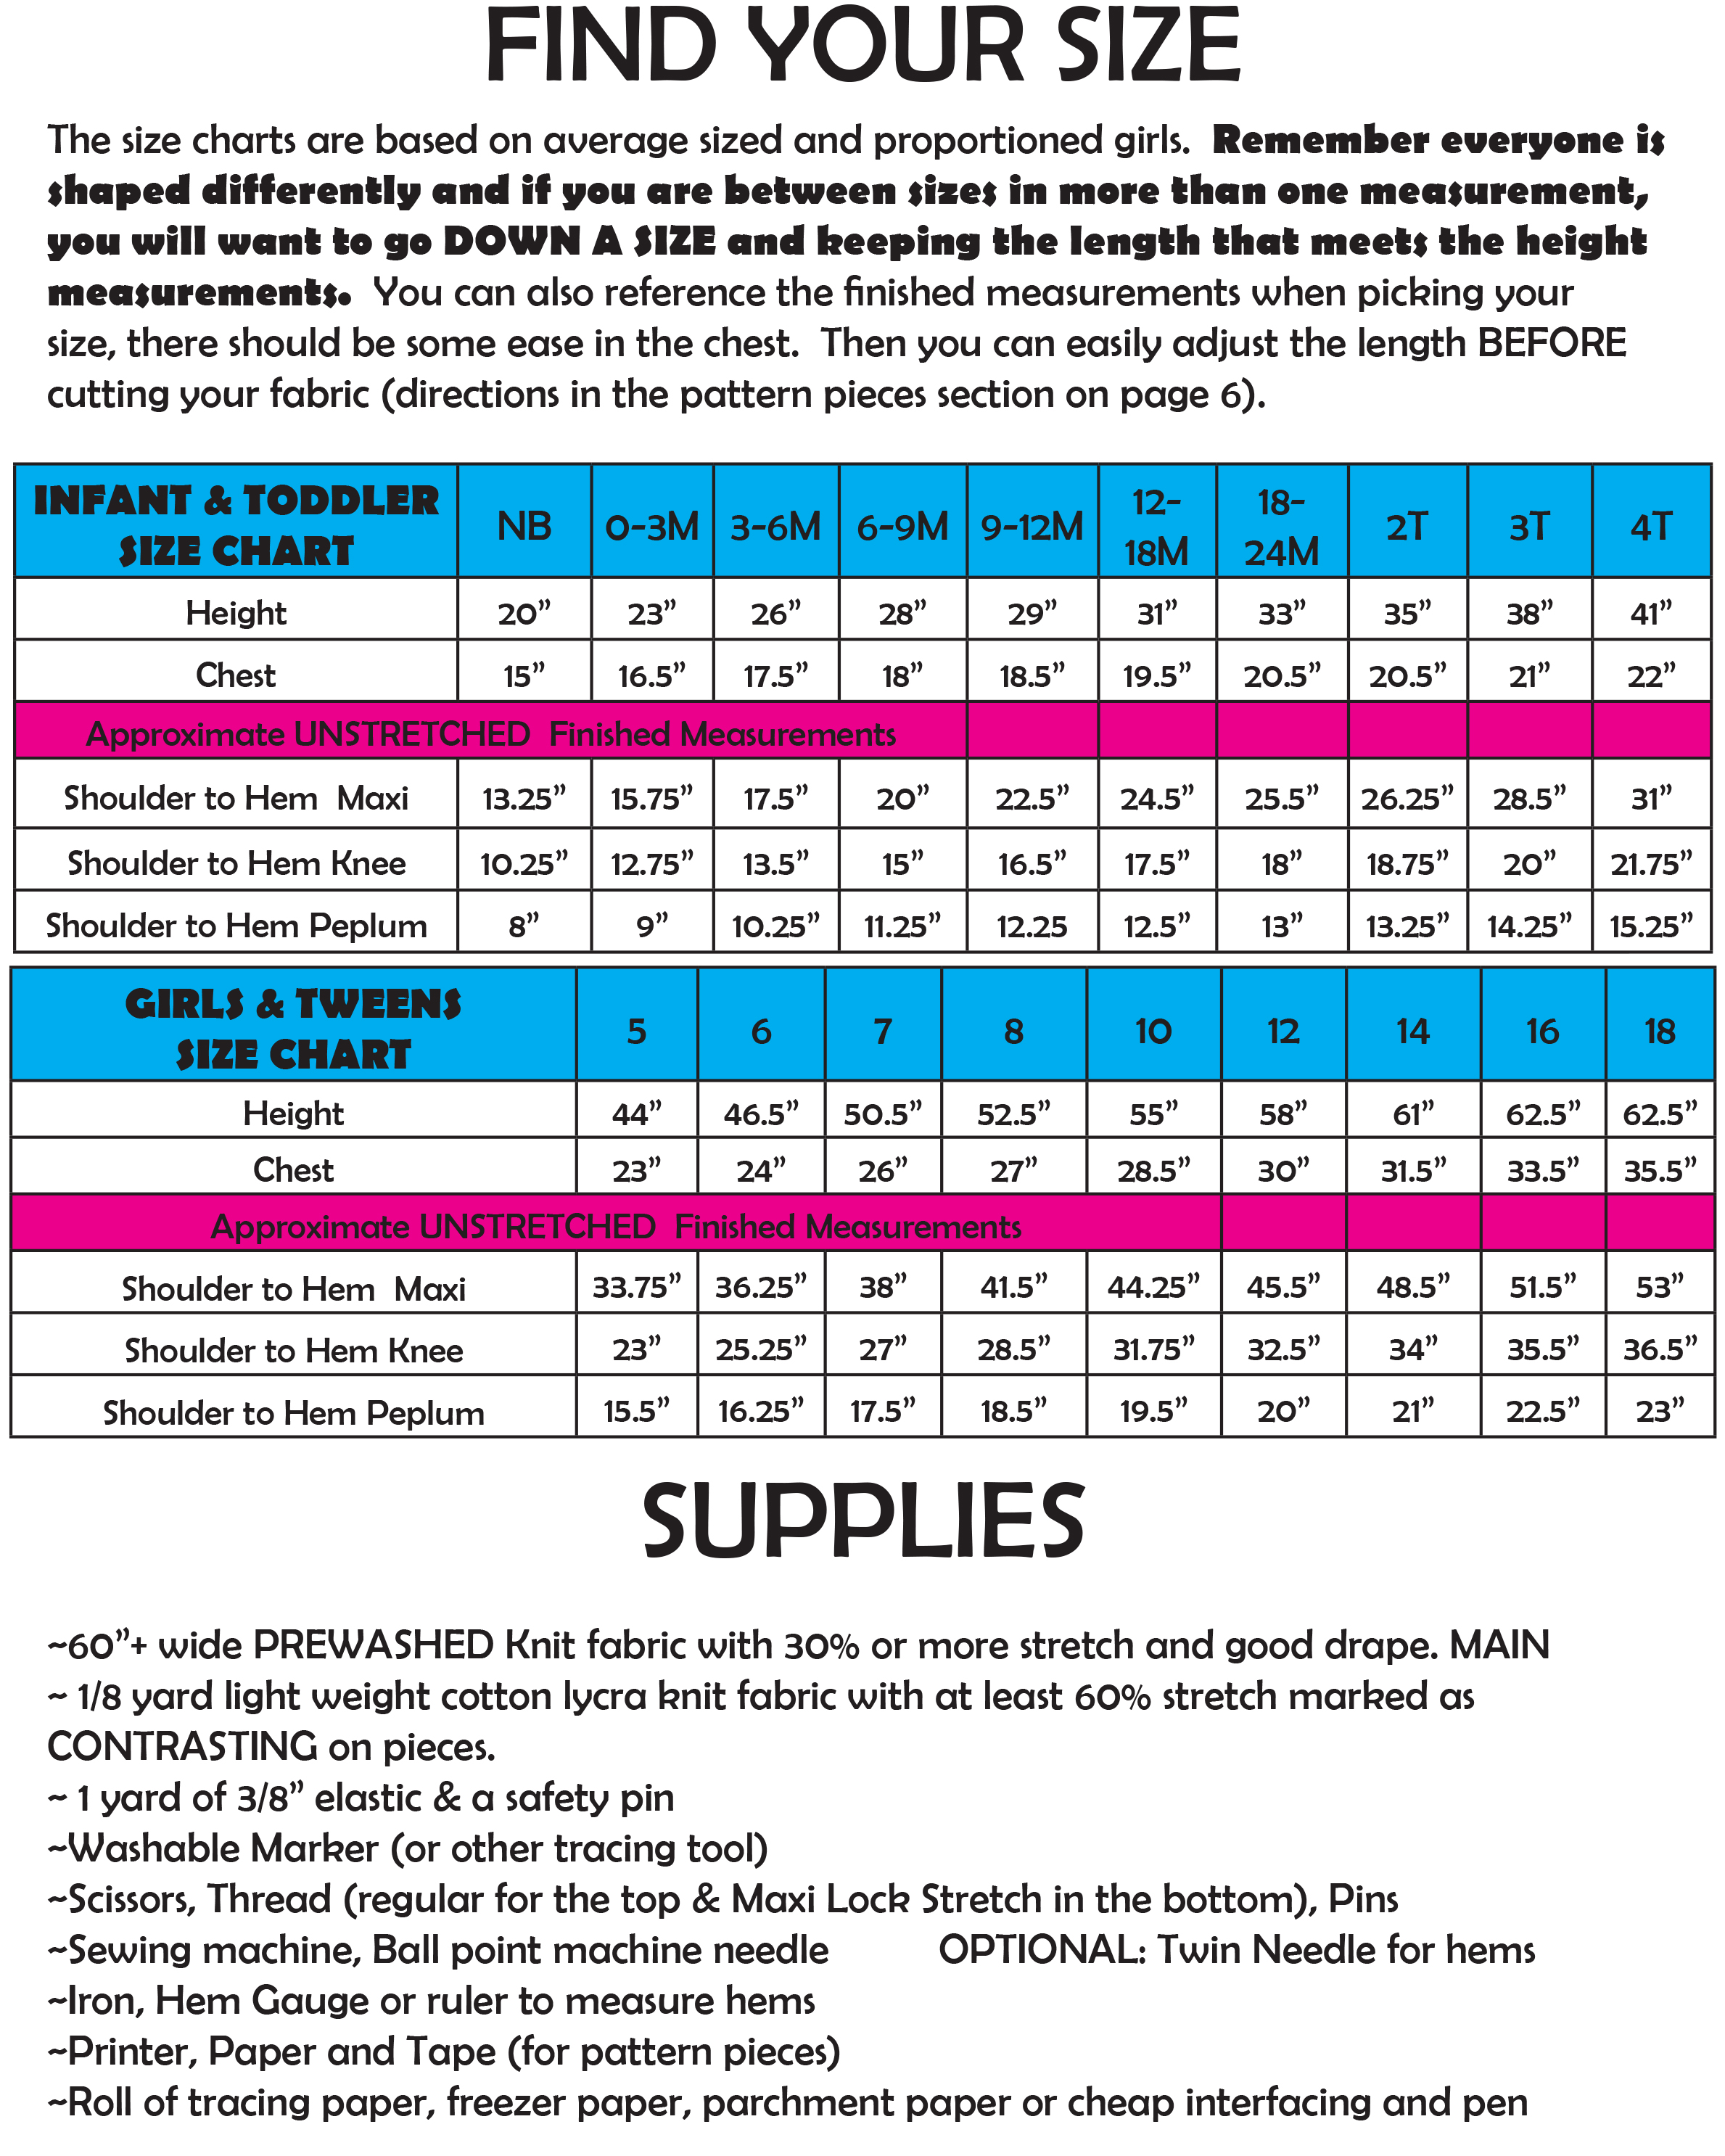 california girls size & supply chart